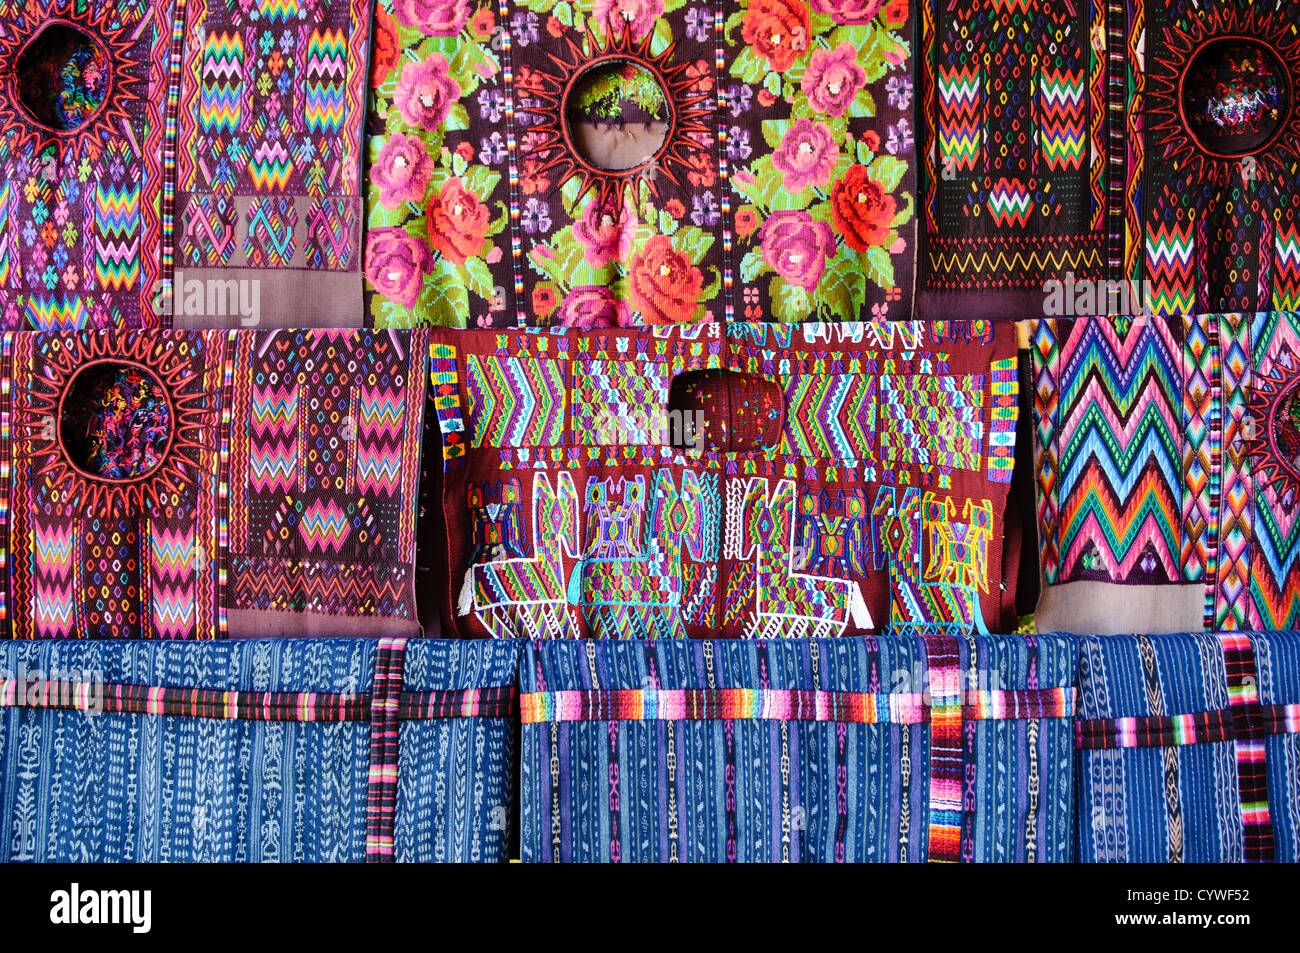 Traditional local woven textiles for sale at the market in Chichi. Chichicastenango is an indigenous Maya town in - Stock Image